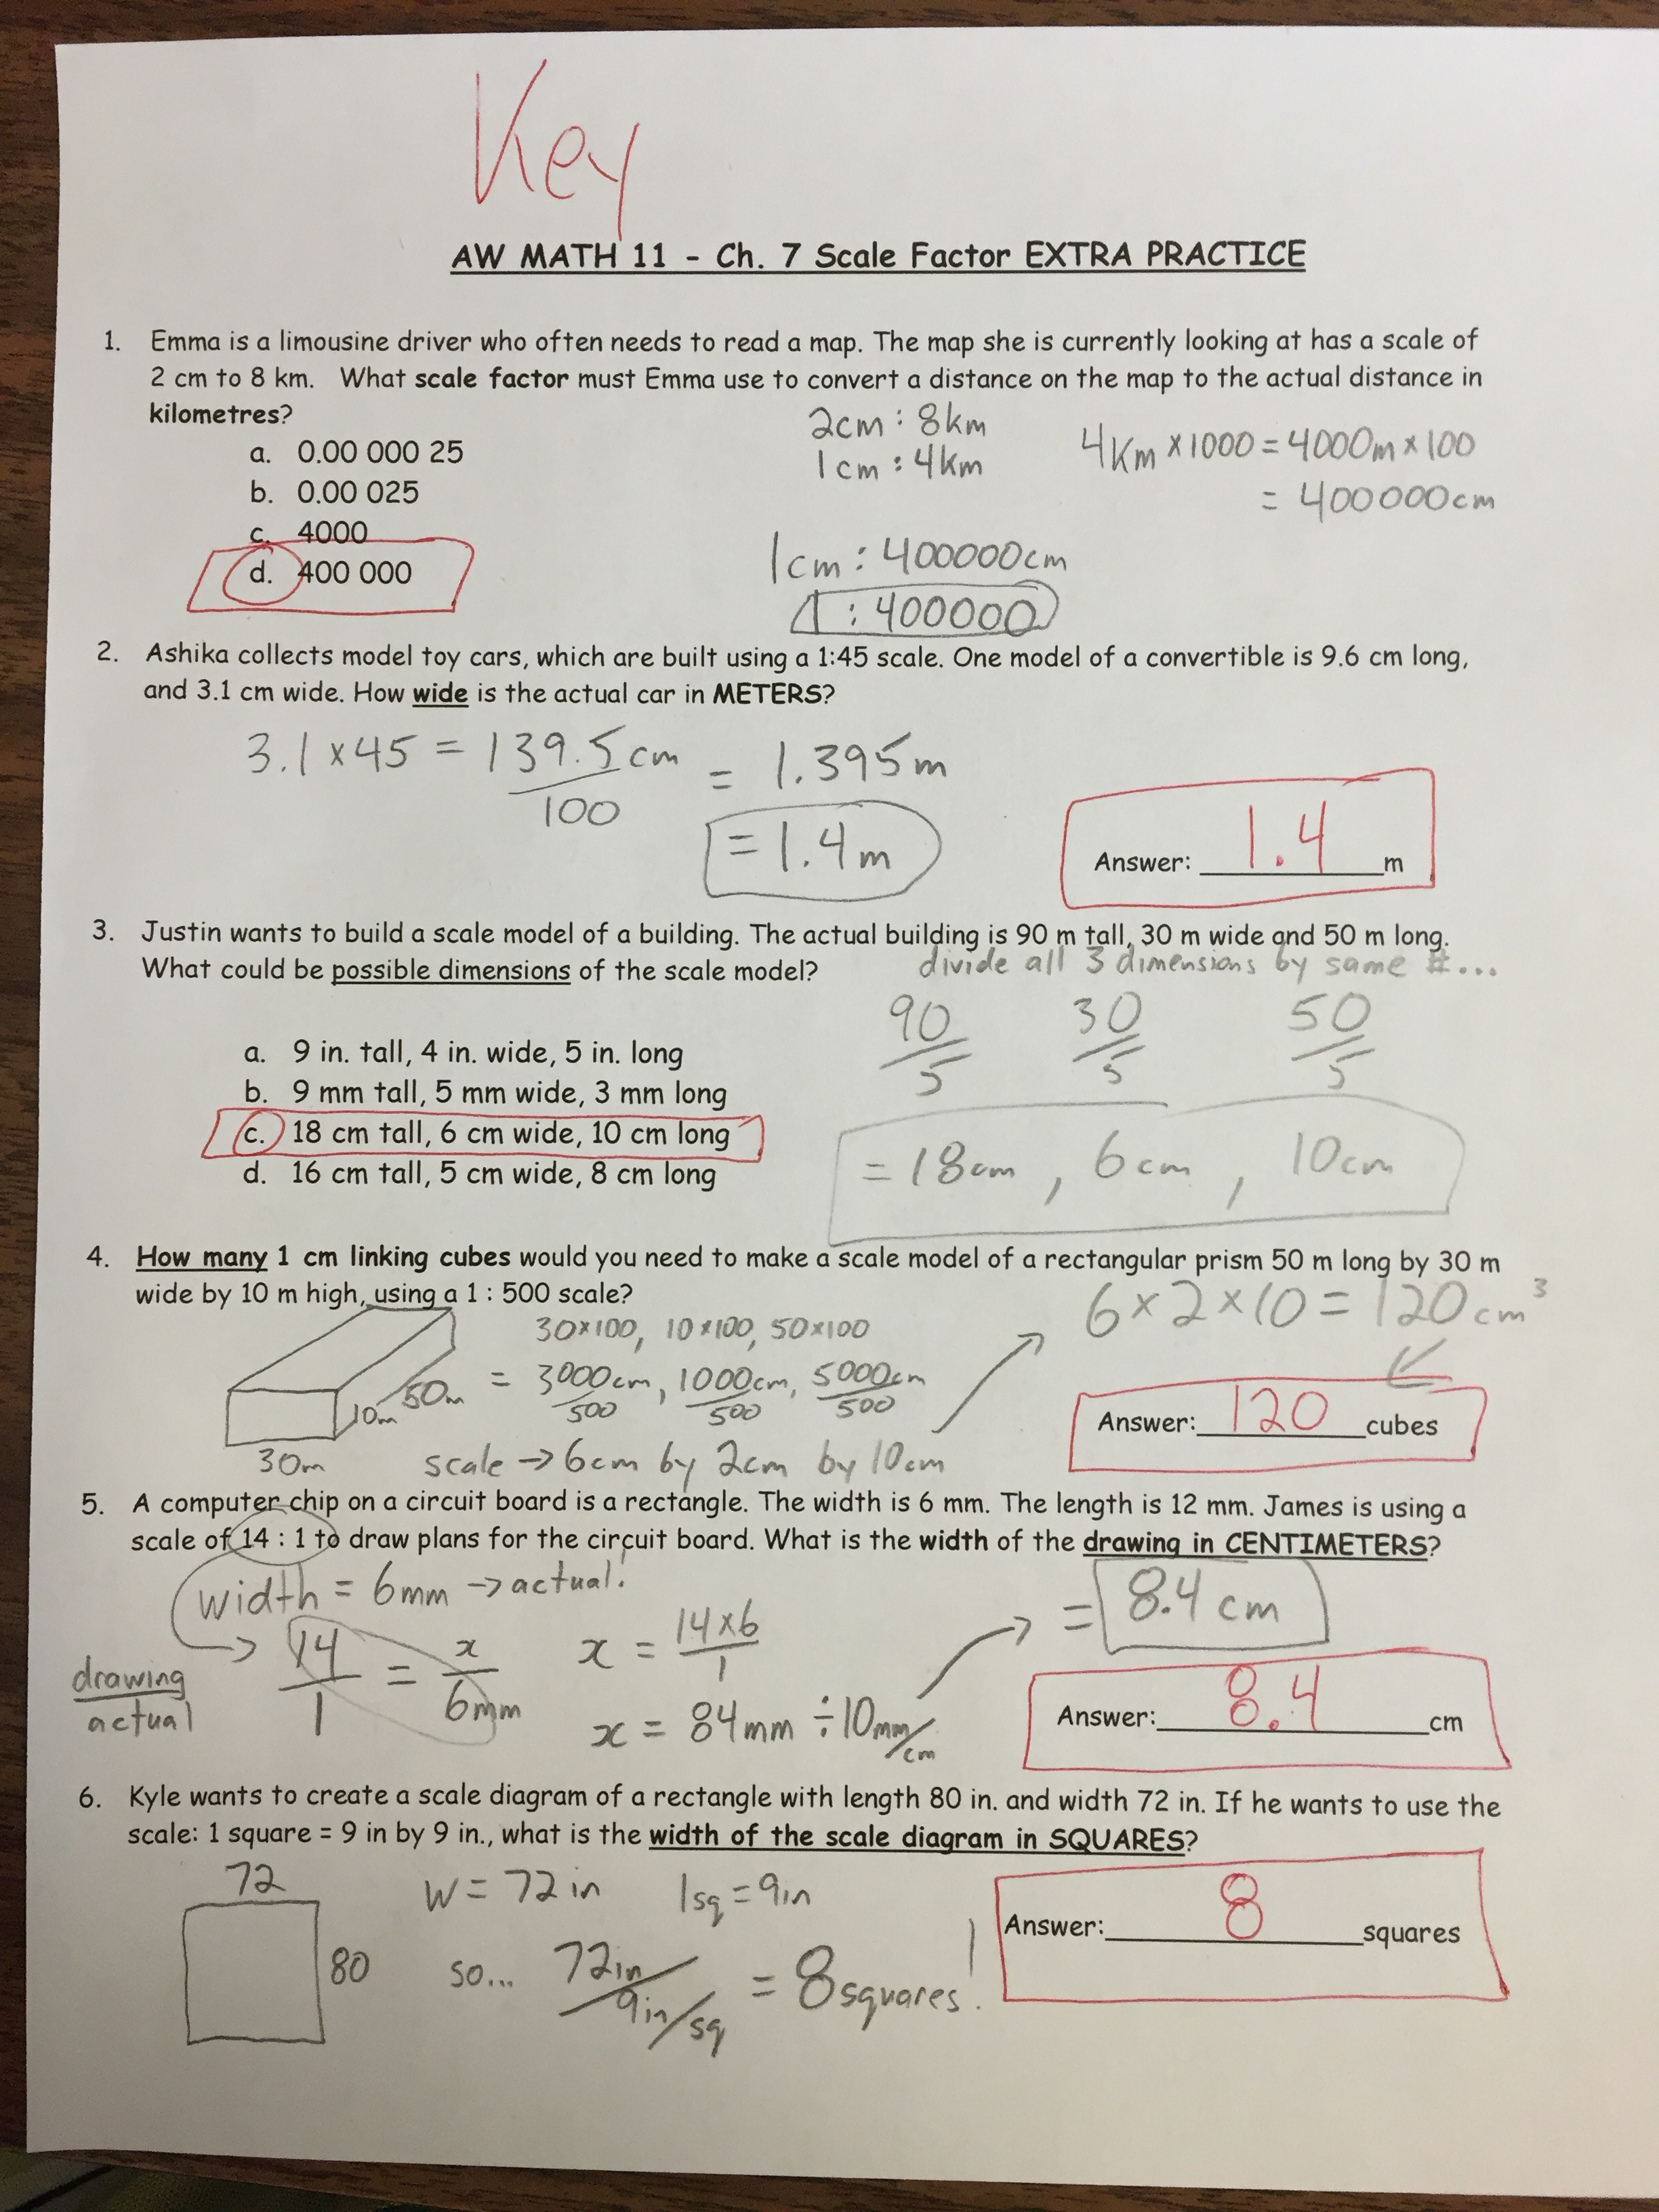 Worksheets Scale Factor Worksheets worksheets and projects mr fogelklous website ch 7 scale factor extra practice solutions key